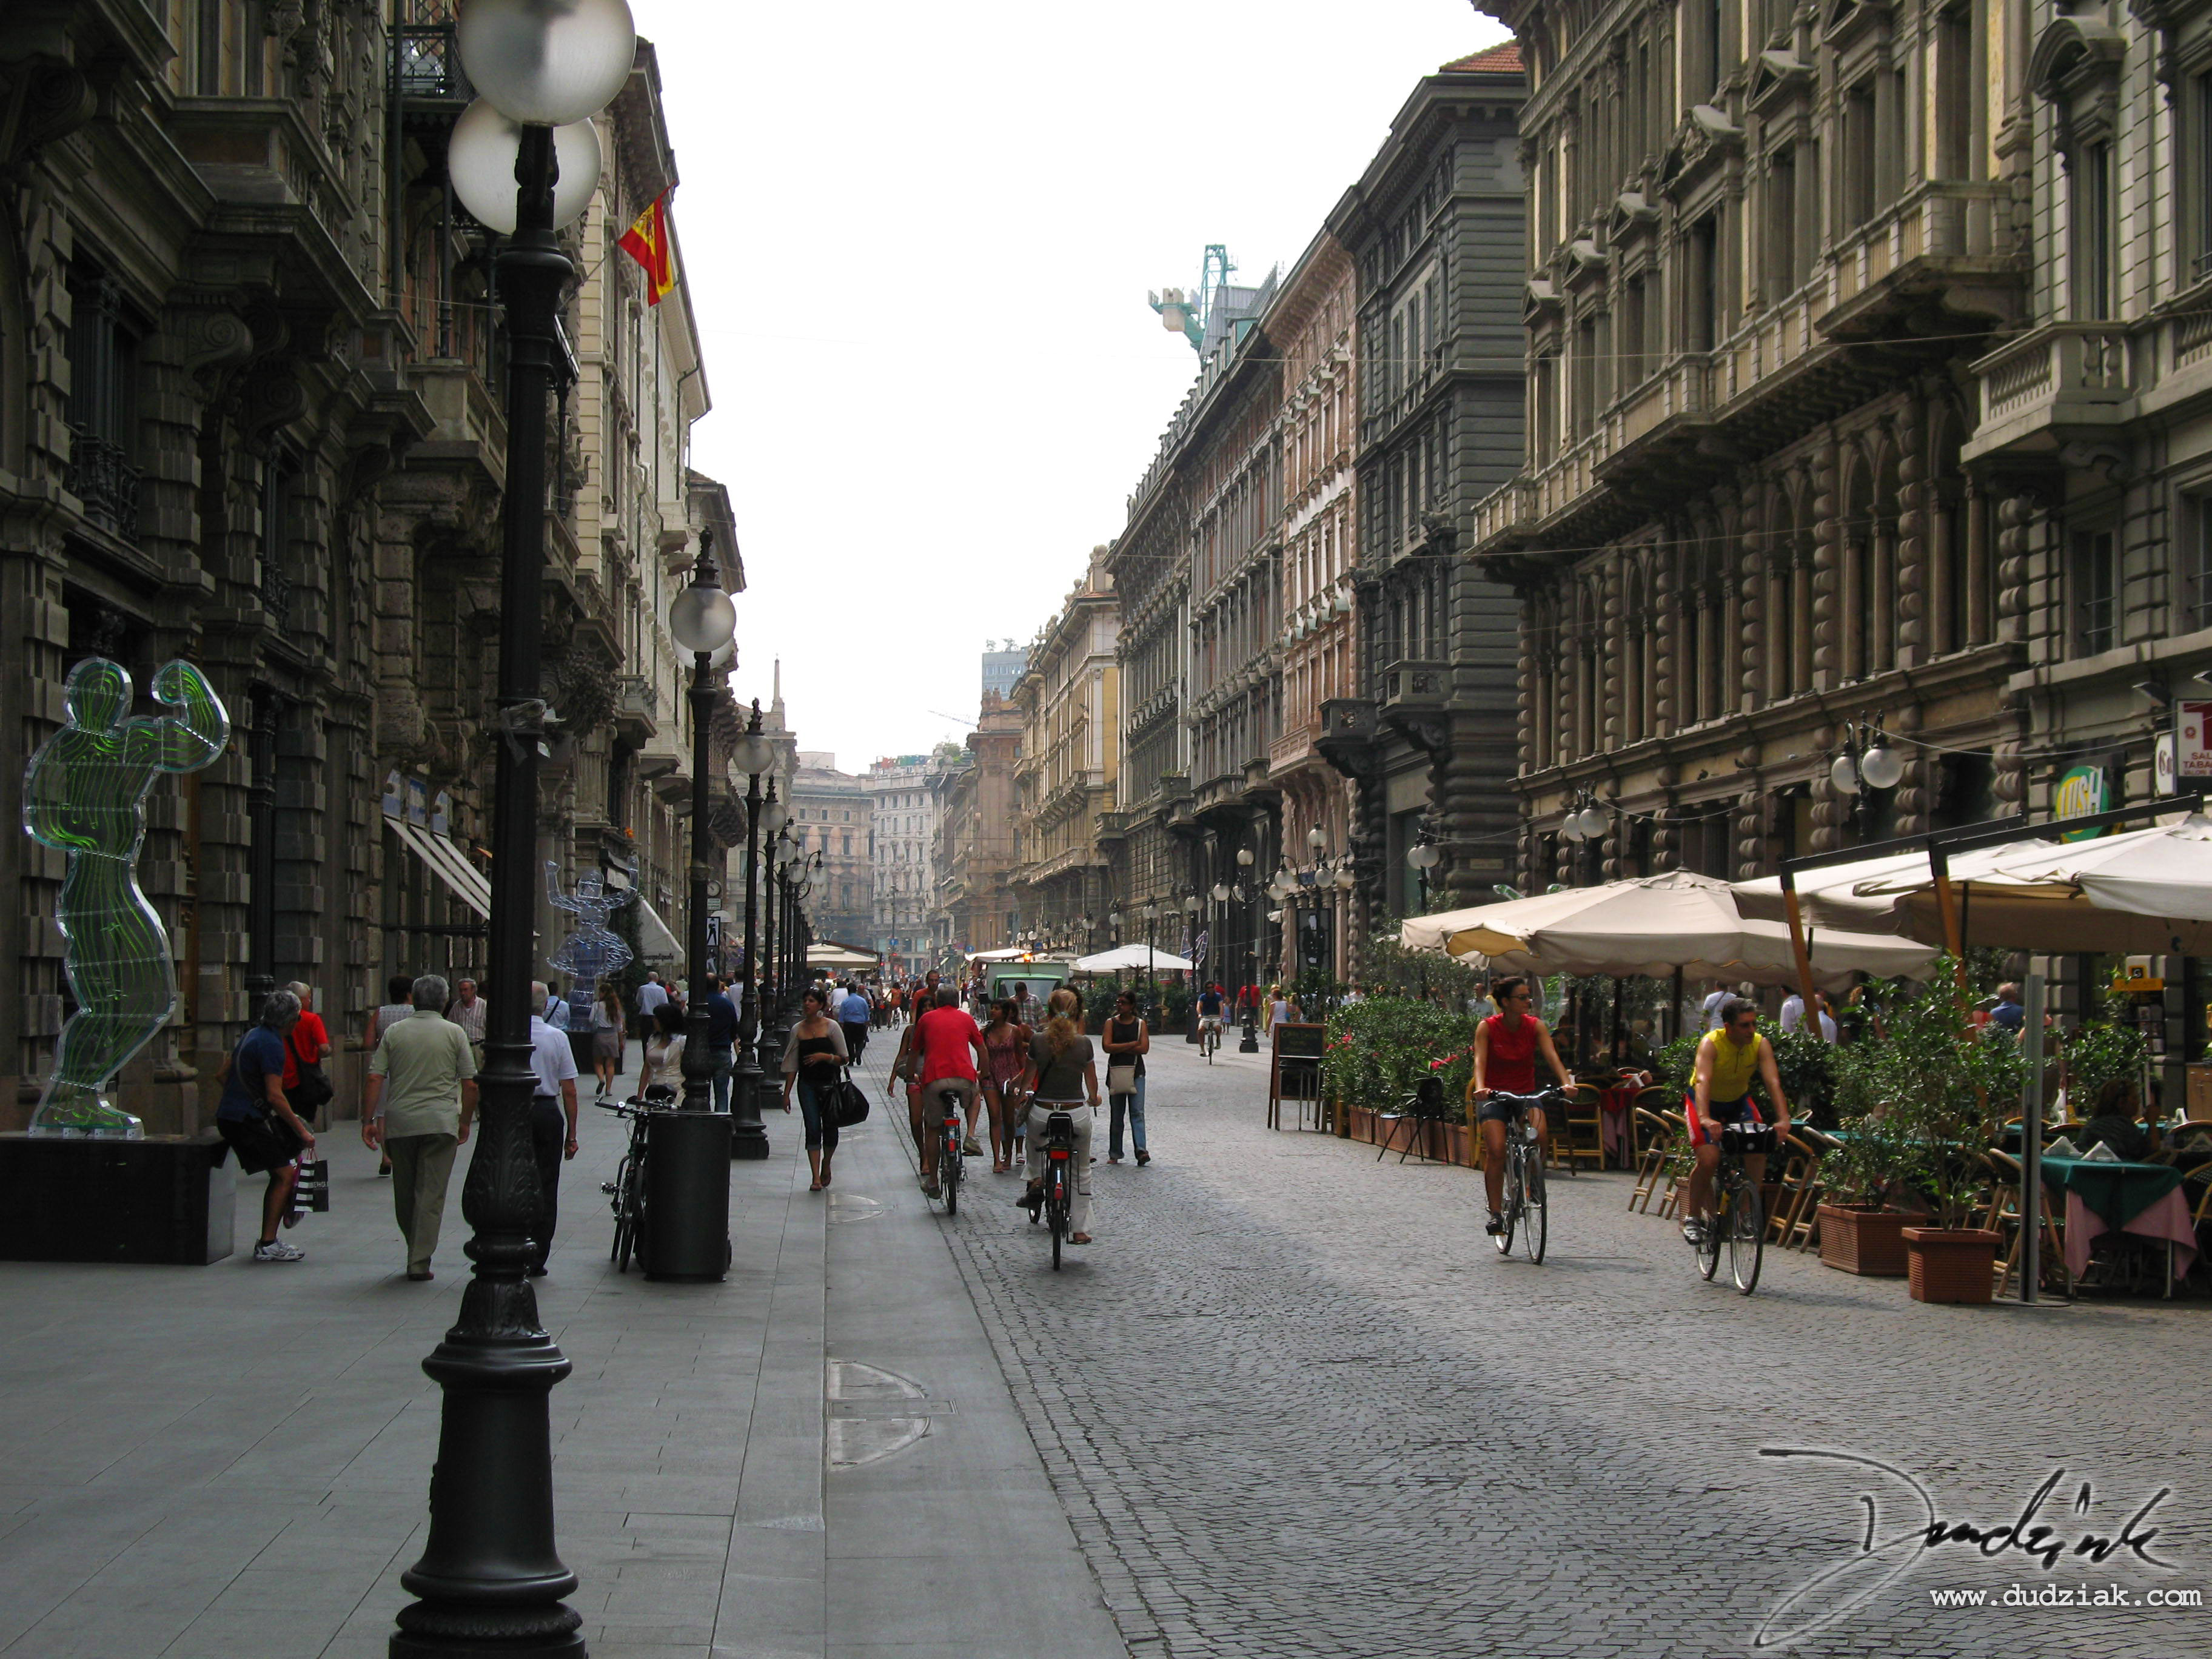 Picture of Via Dante (Dante Road) in Milan, Italy.